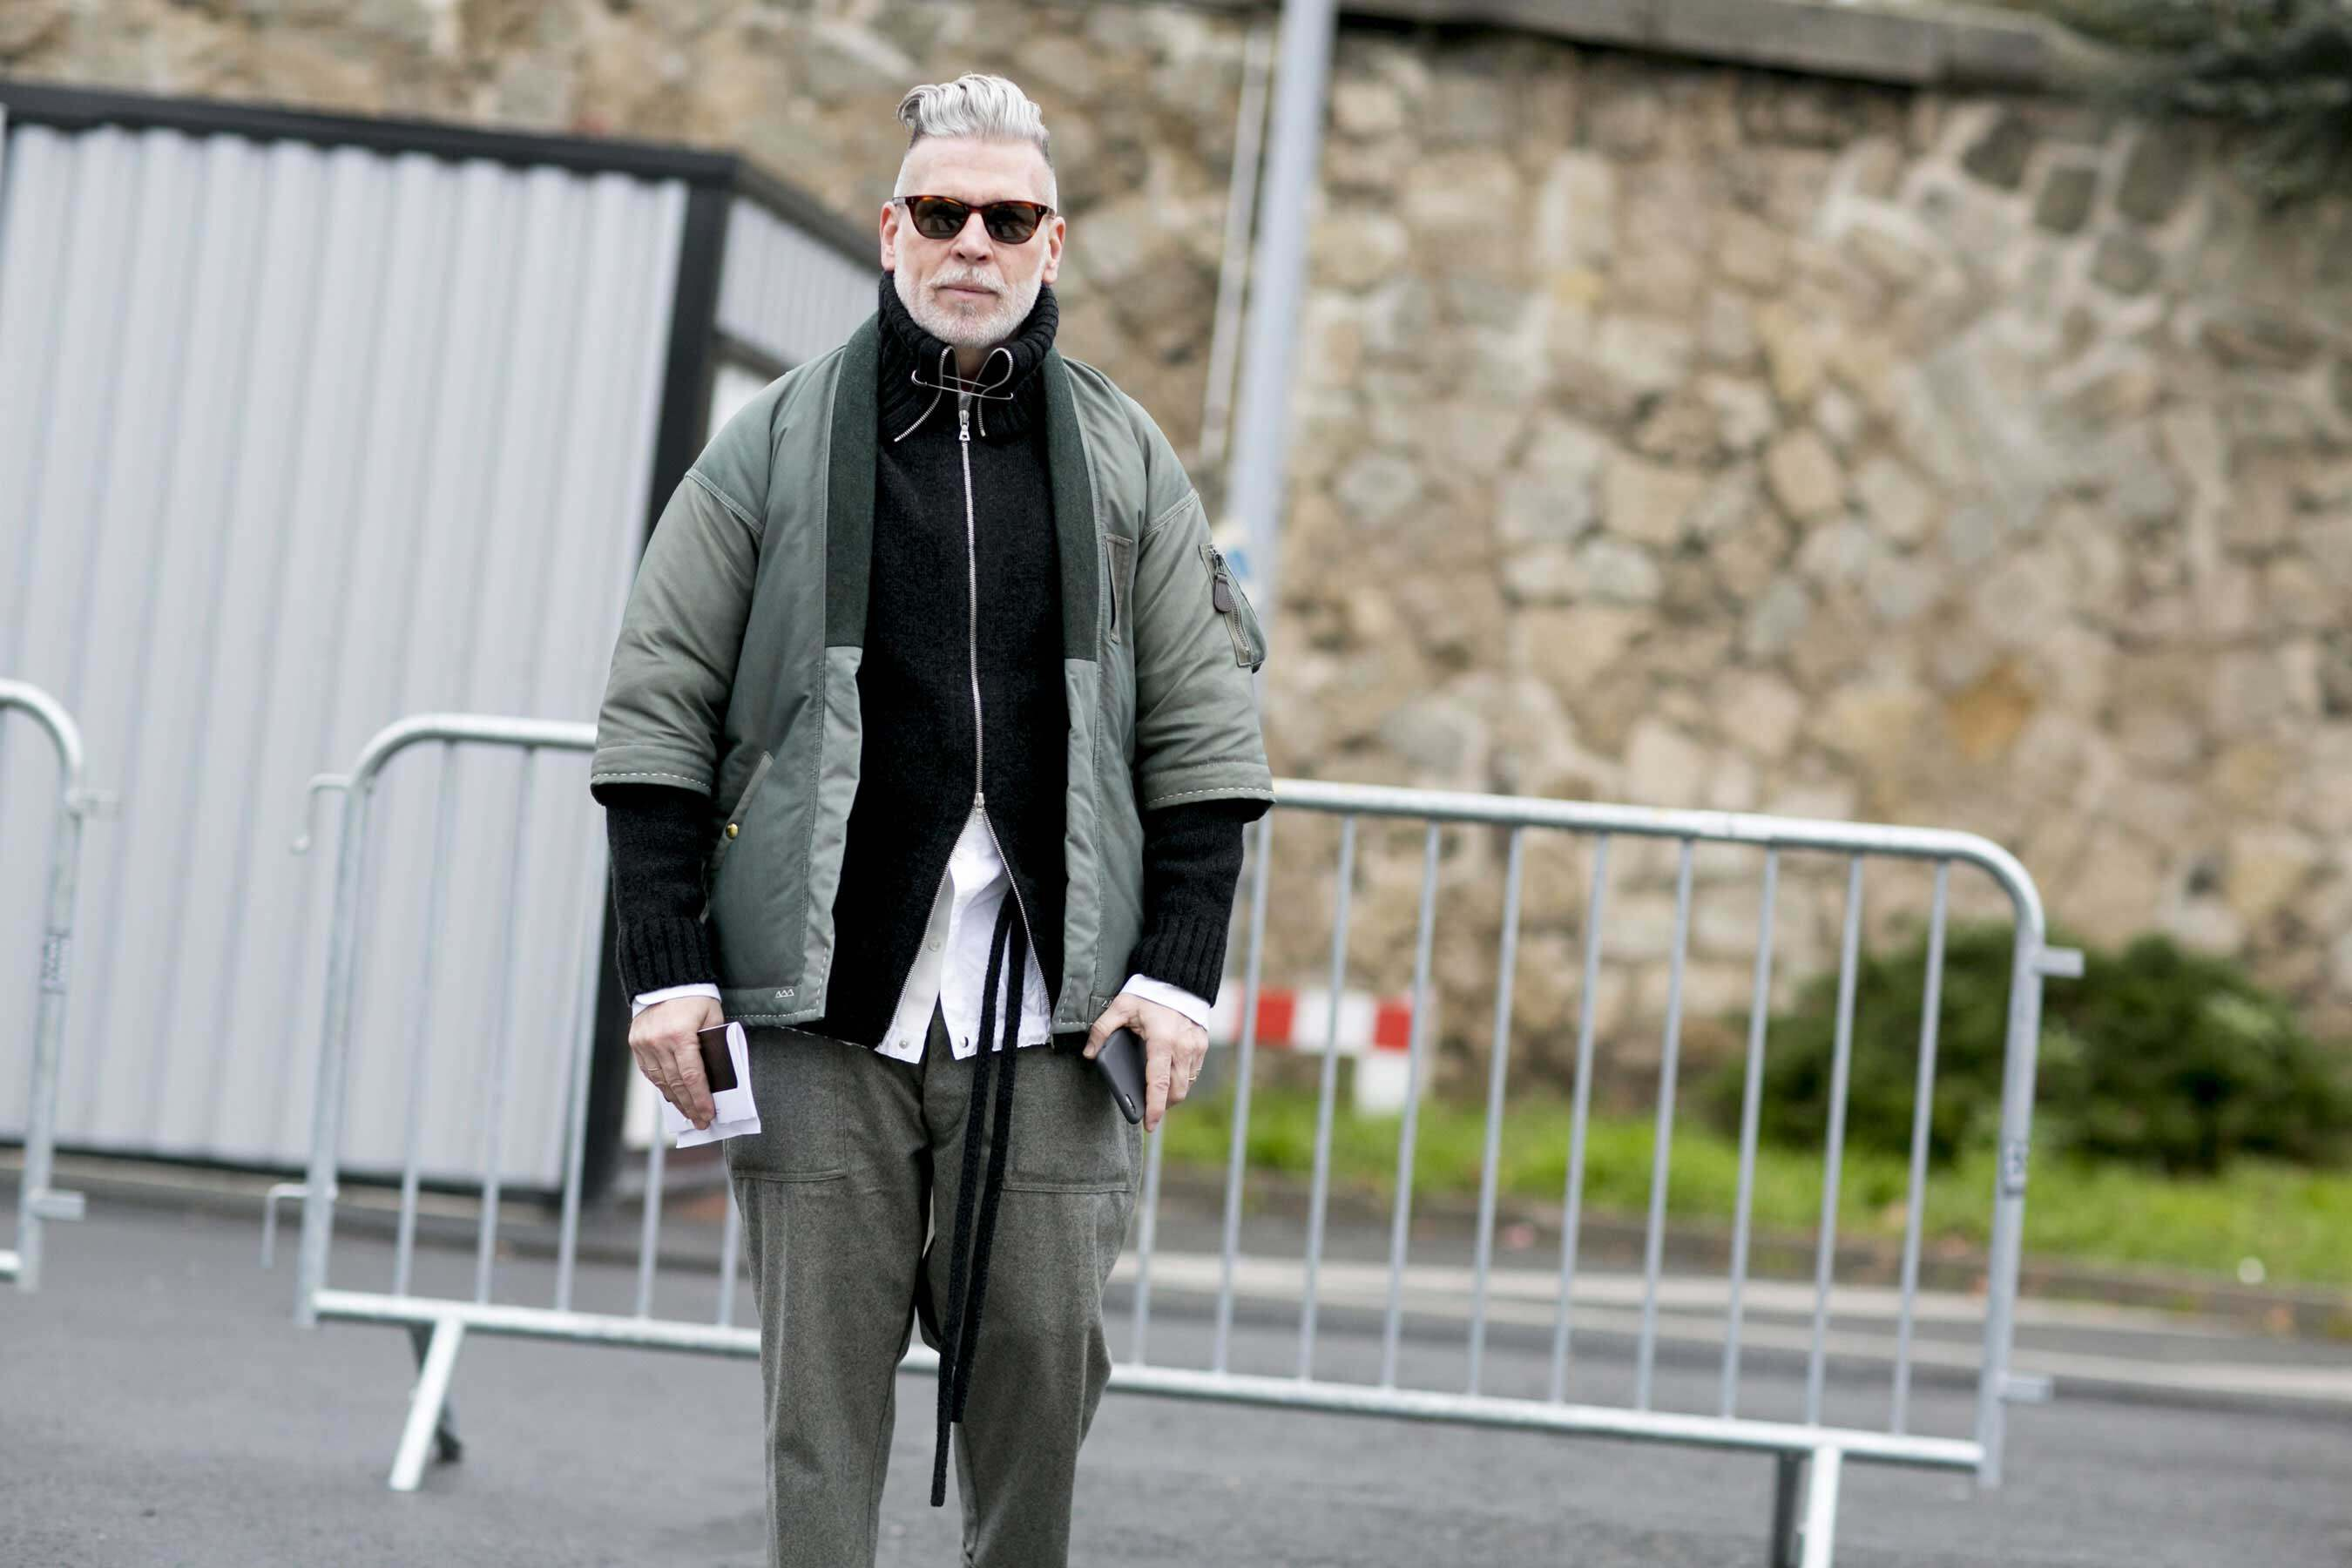 Nick Wooster, FW16, Fashion Week, Street Style